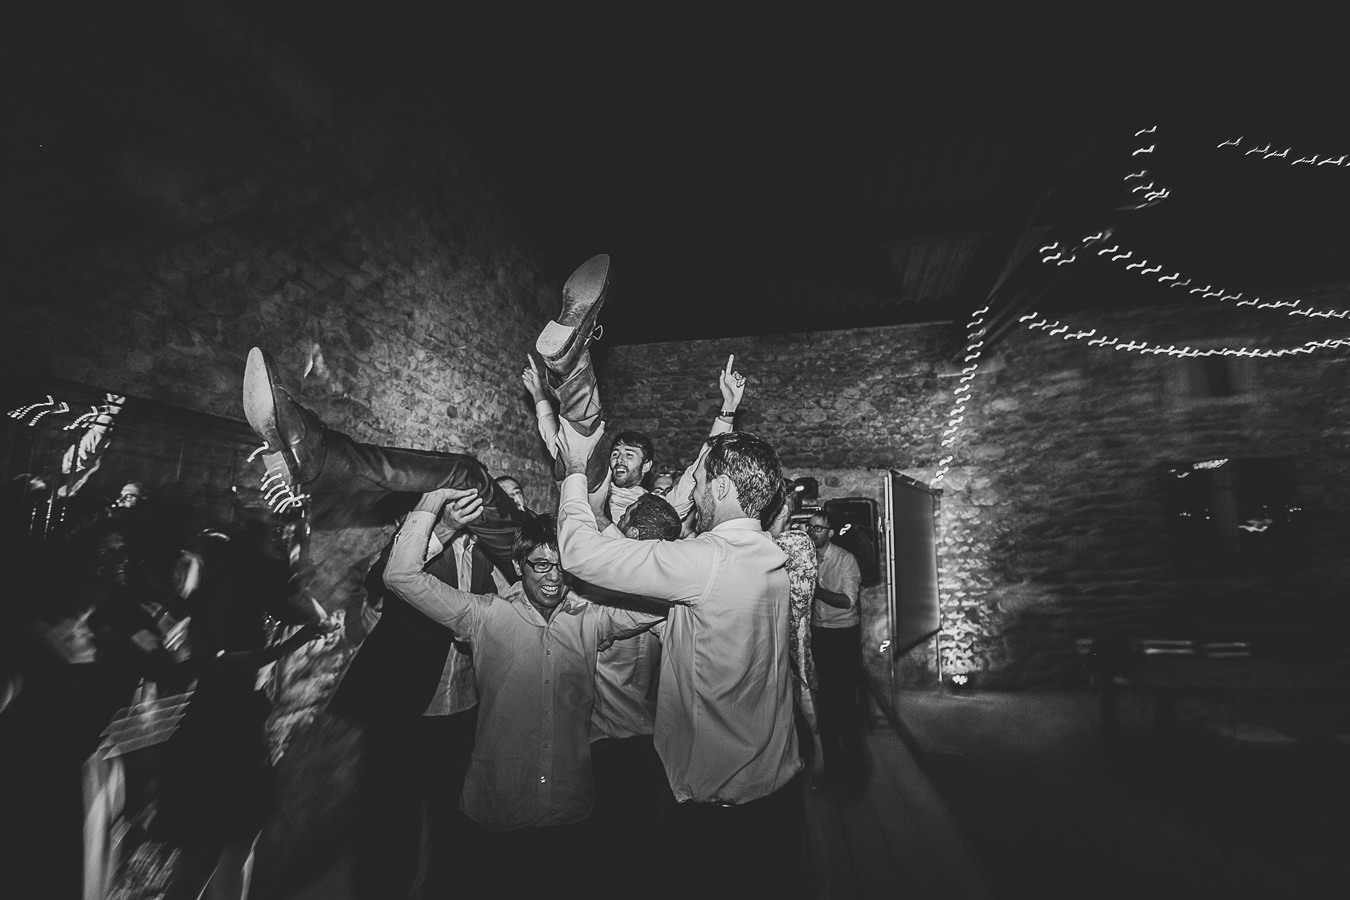 wedding_champetre_domaine_patras_a+p-917.jpg